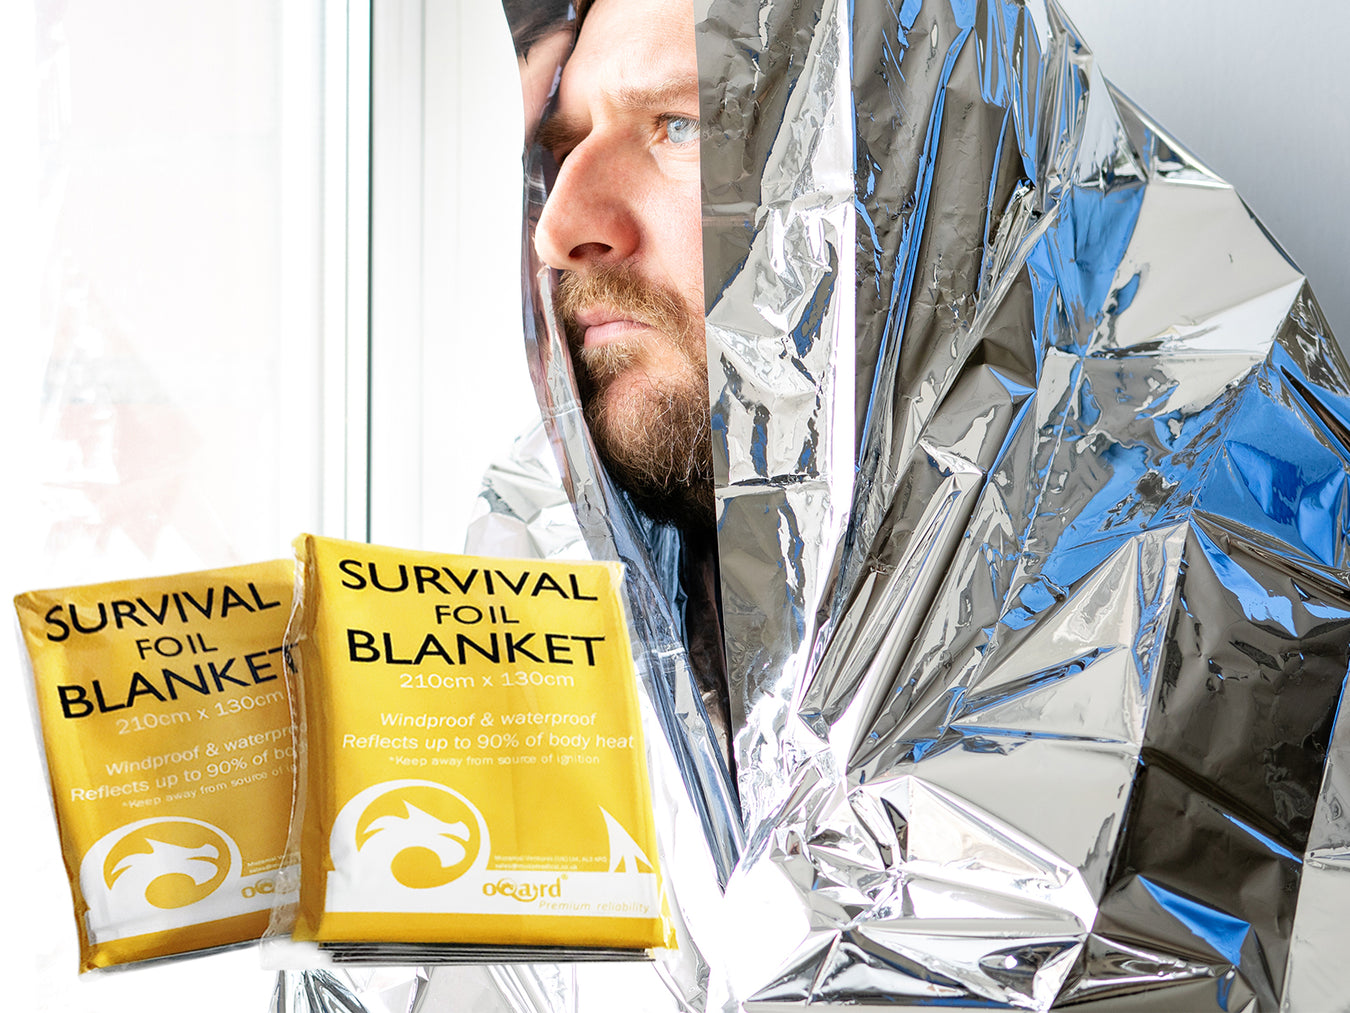 Survival Foil Blanket